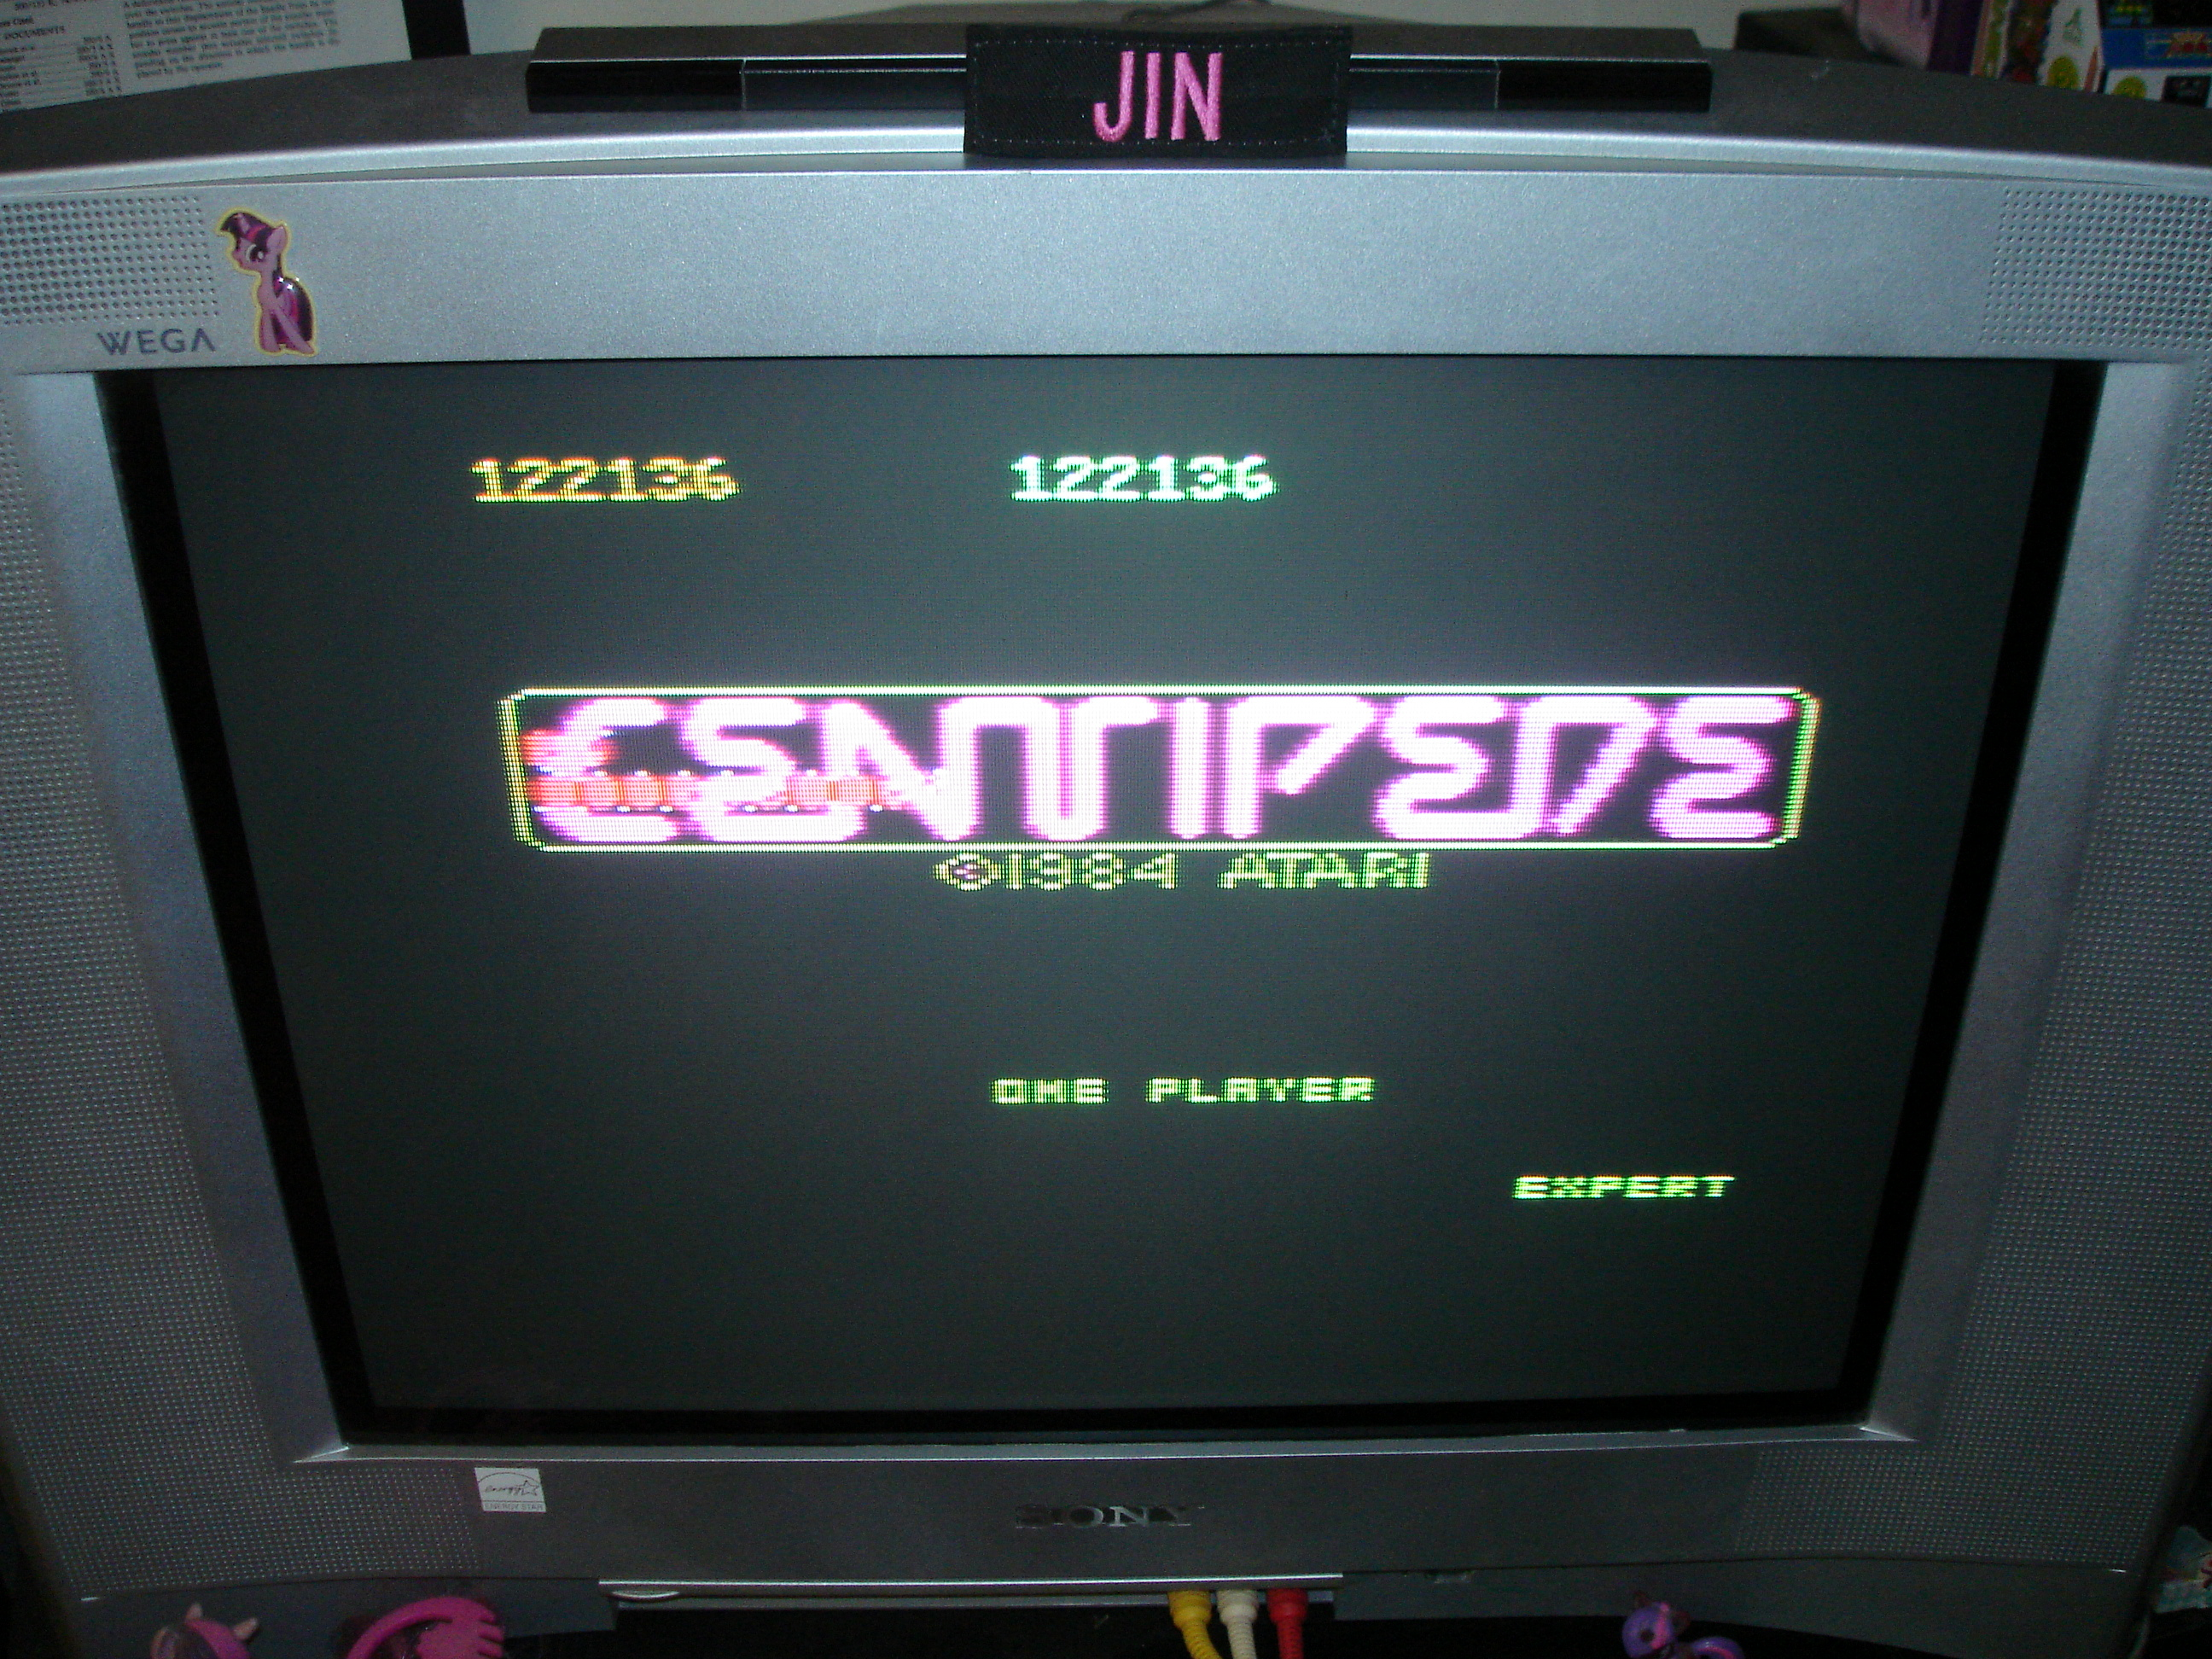 Centipede: Expert 122,136 points